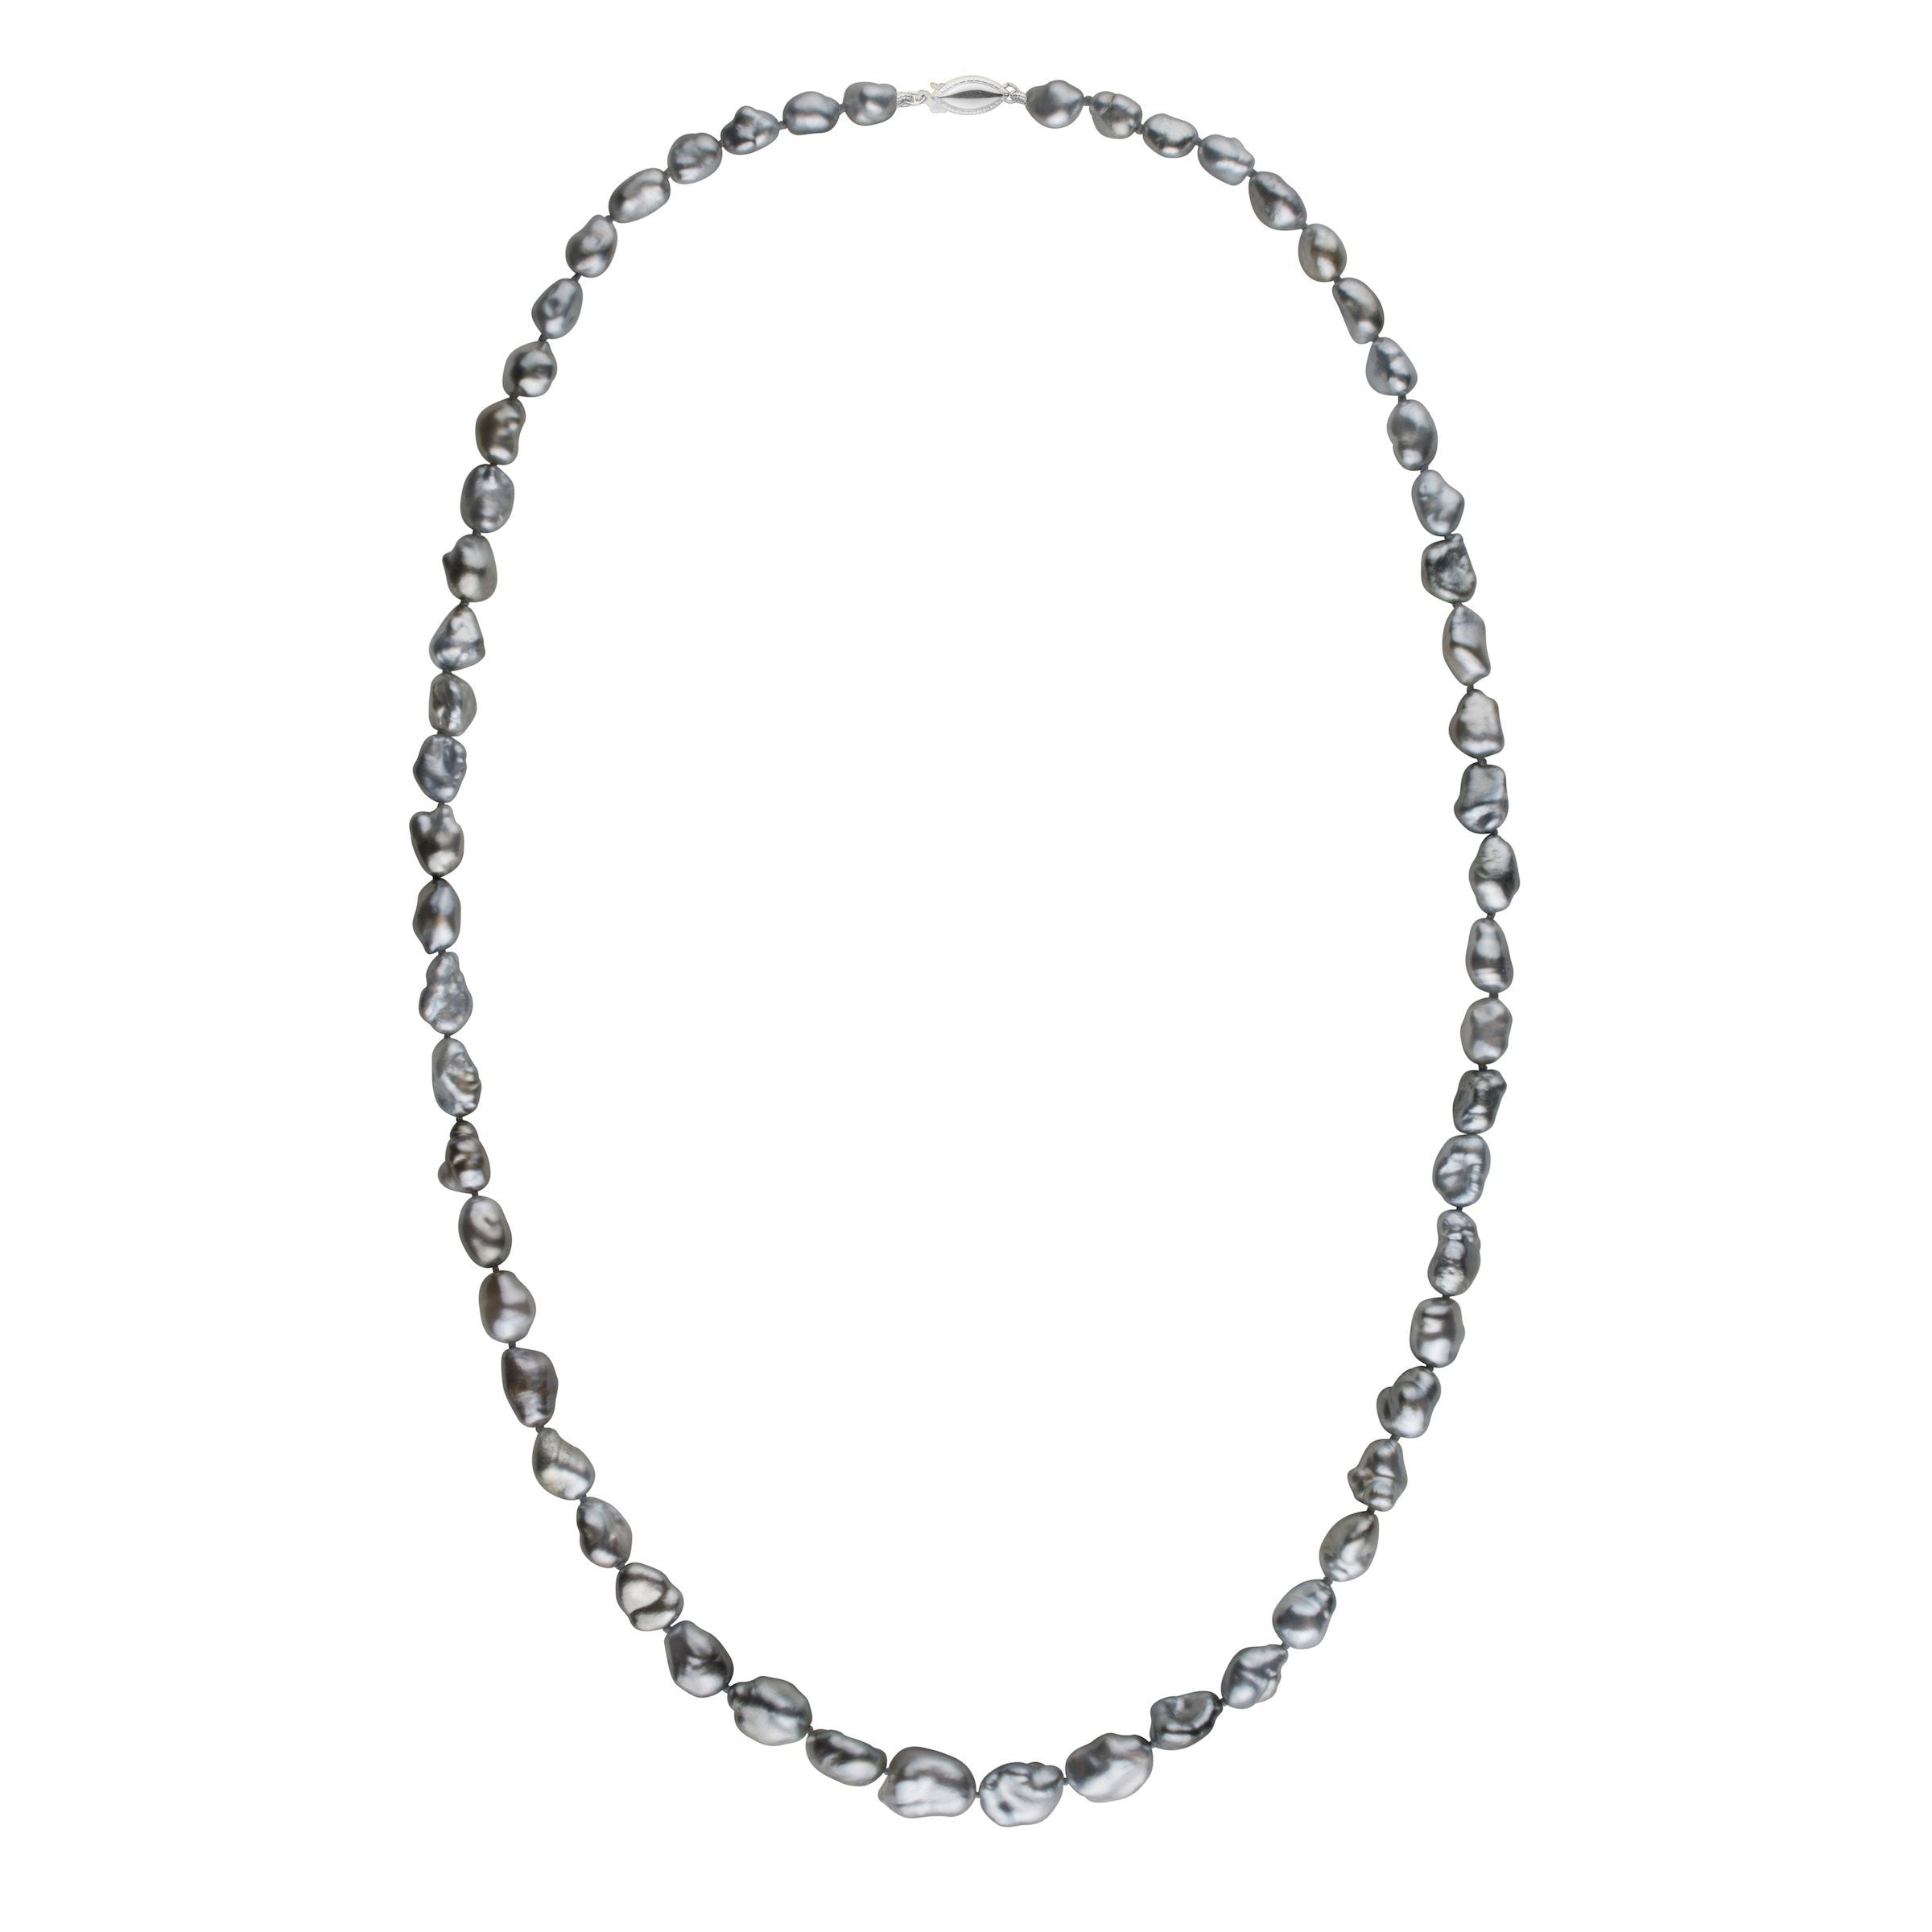 7.5-9.5 mm 24 Inch Dark Silver Keshi Tahitian Pearl Necklace